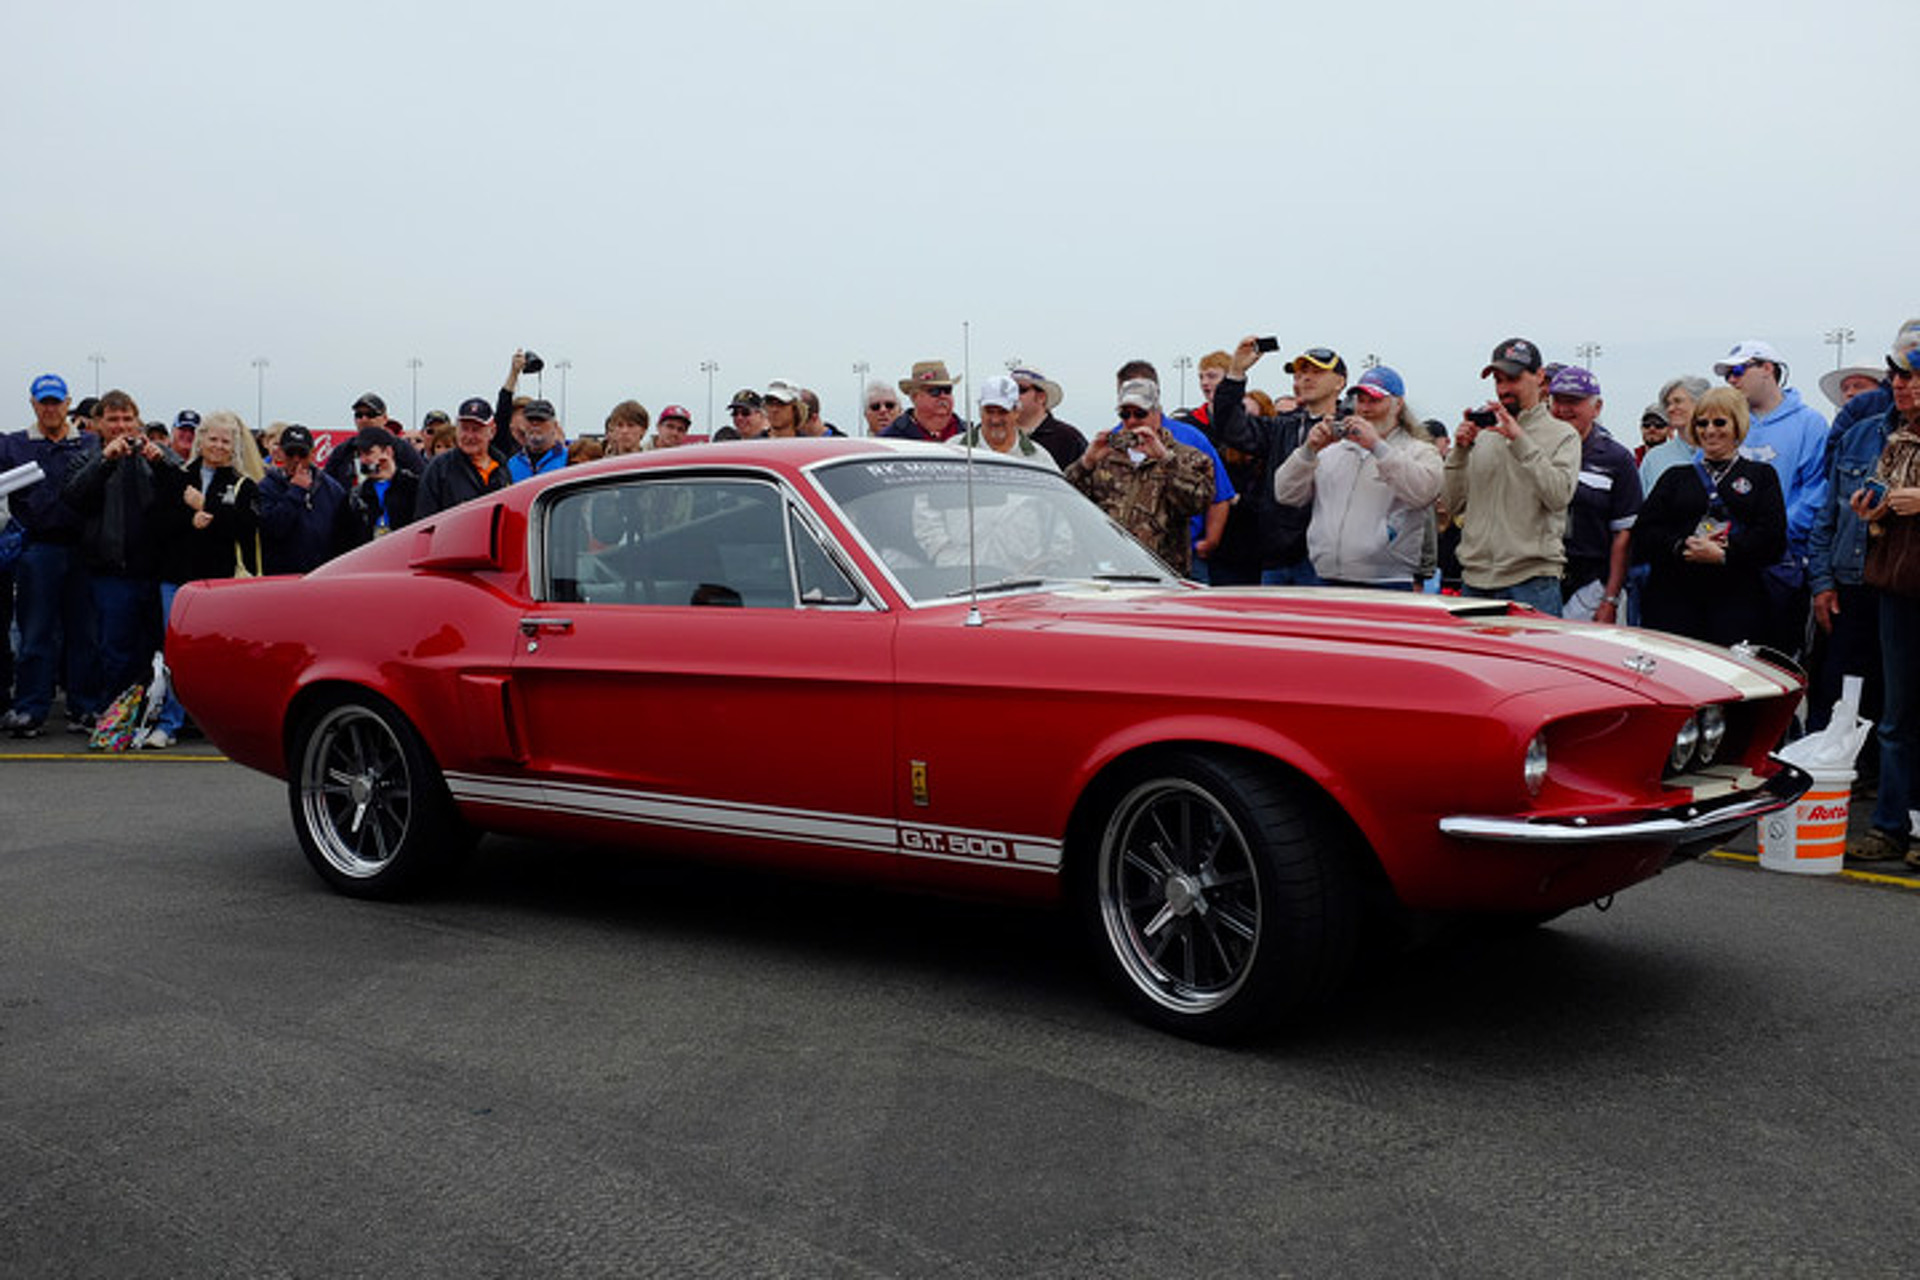 The RK527 is the 800-hp shelby GT500 to Rule Them All